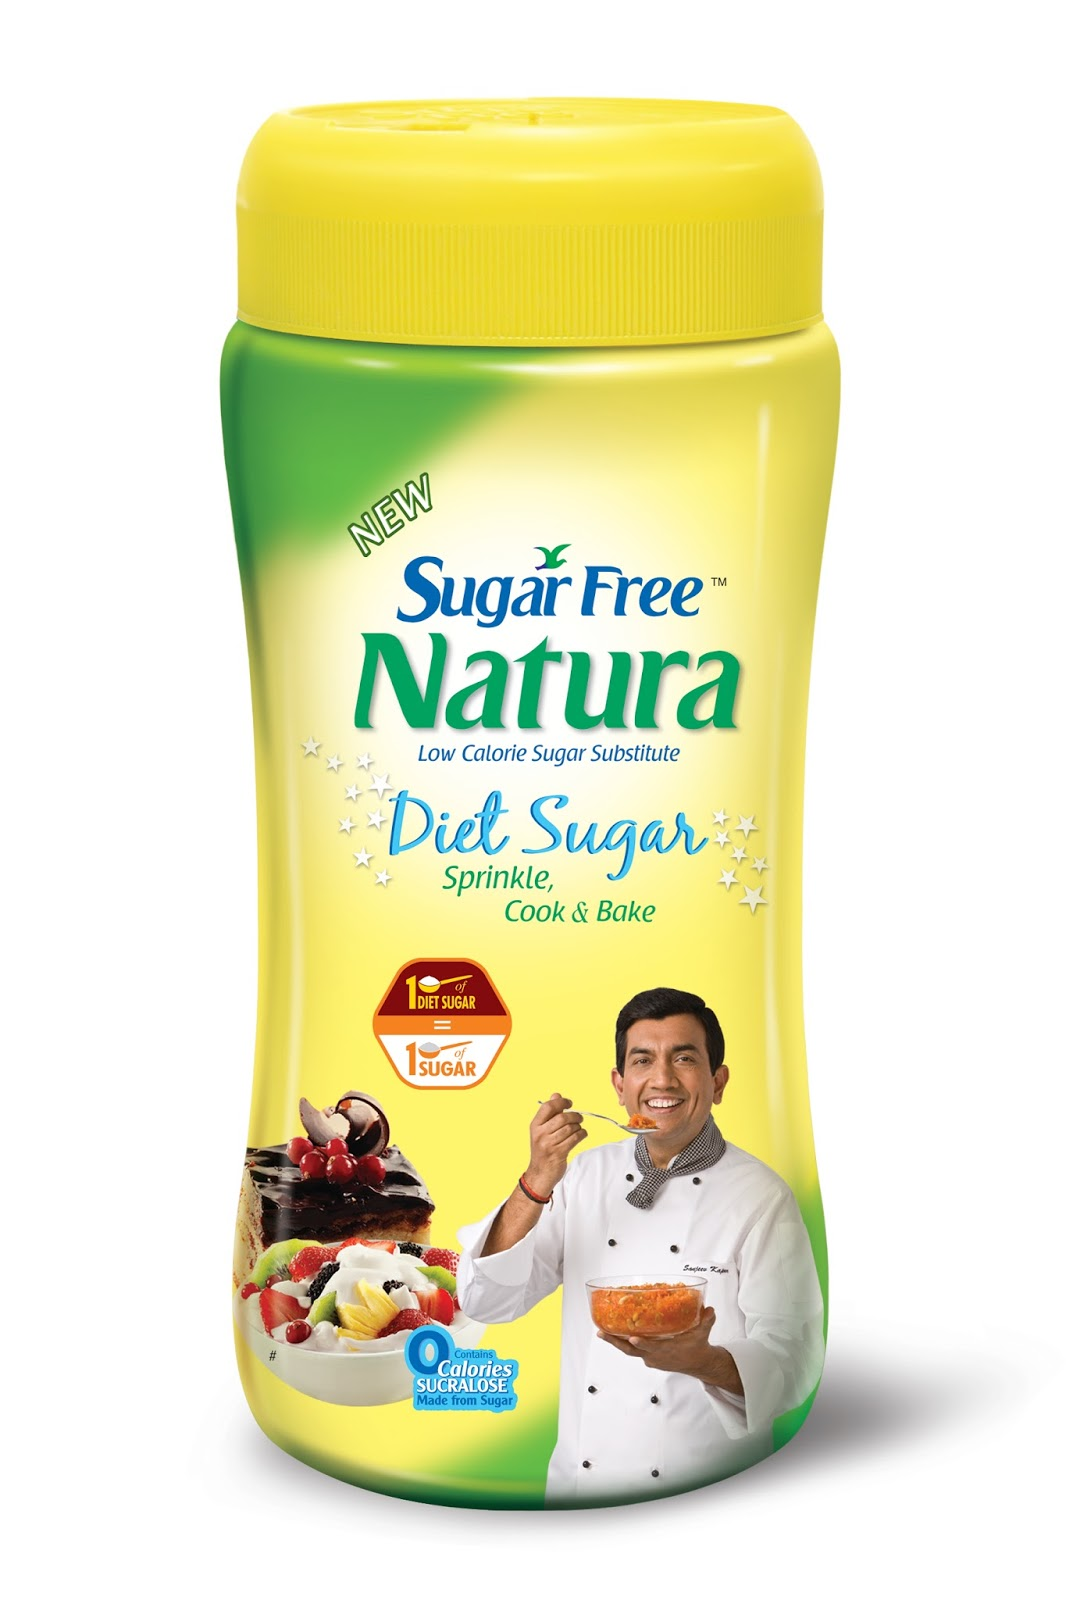 Top 8 recipes with sugar free natura diet sugar from my kitchen the harmful effects of sugar dont stop at diabetes it is also linked to a number of heart liver and other related diseases most of the food we consume forumfinder Gallery